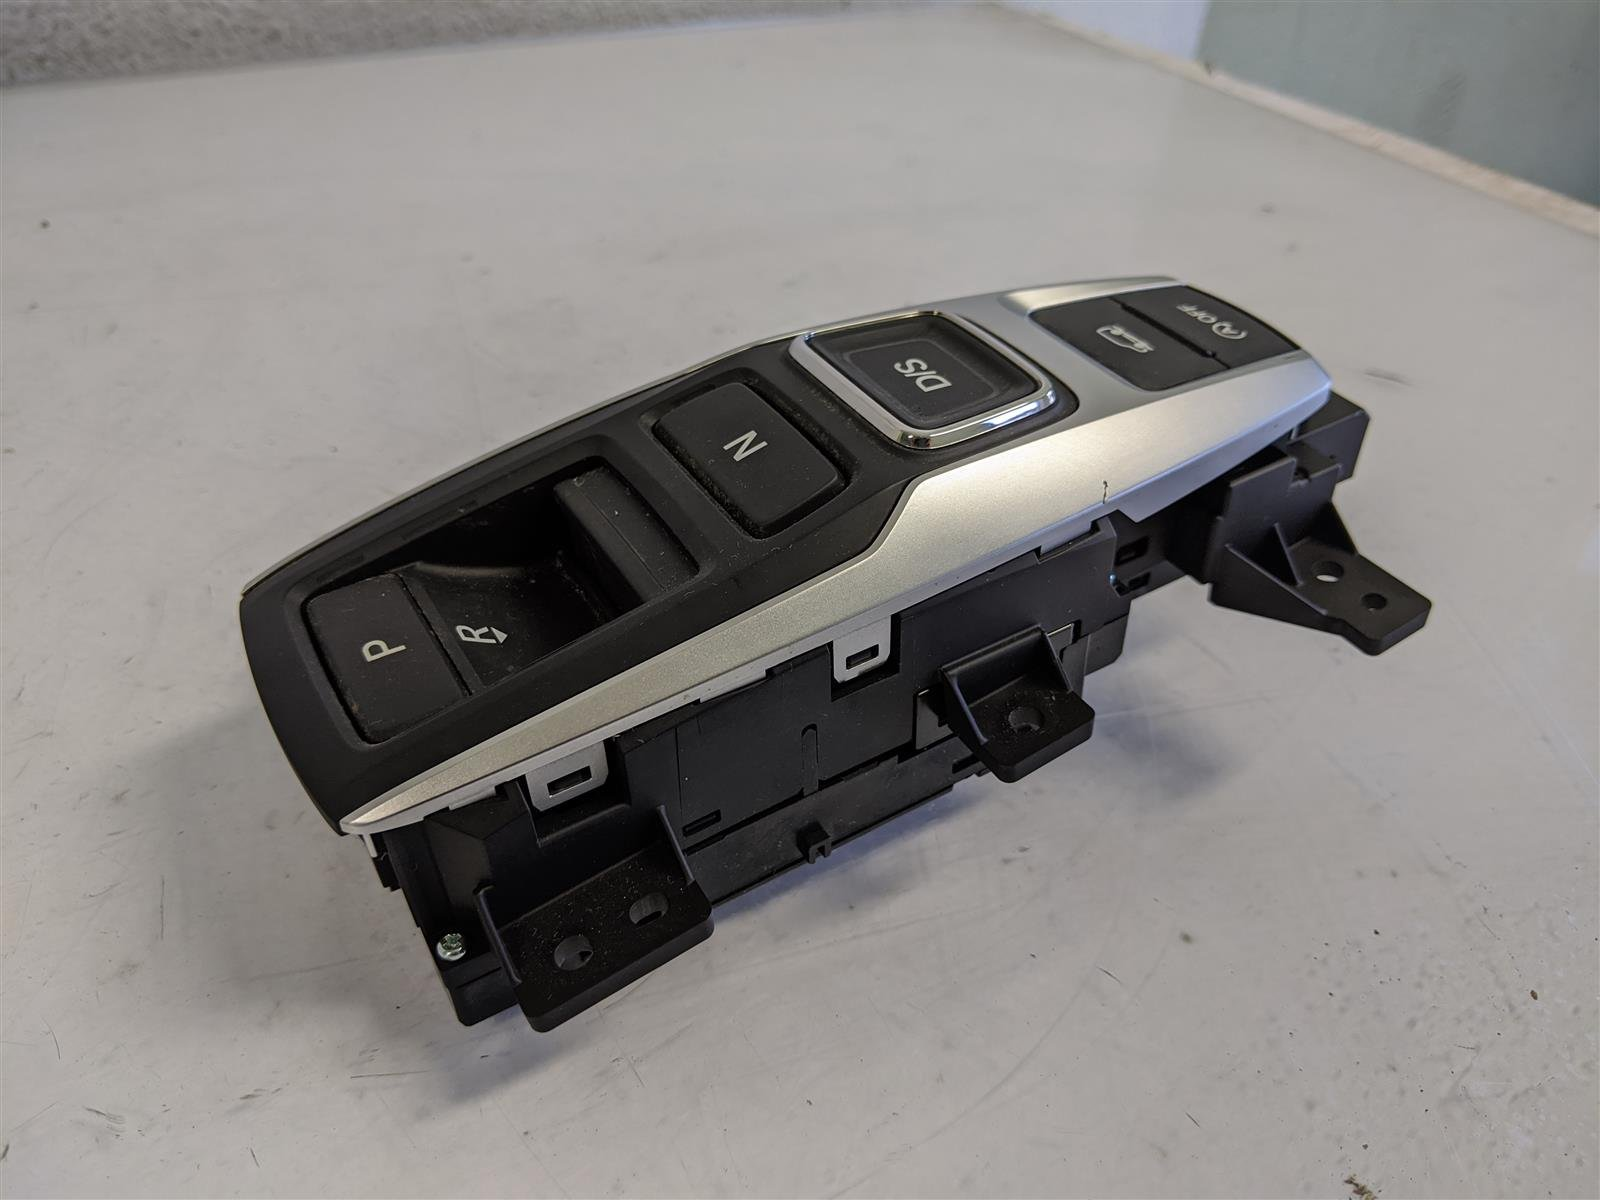 2018 Honda Pilot Electronic Shifter Replacement